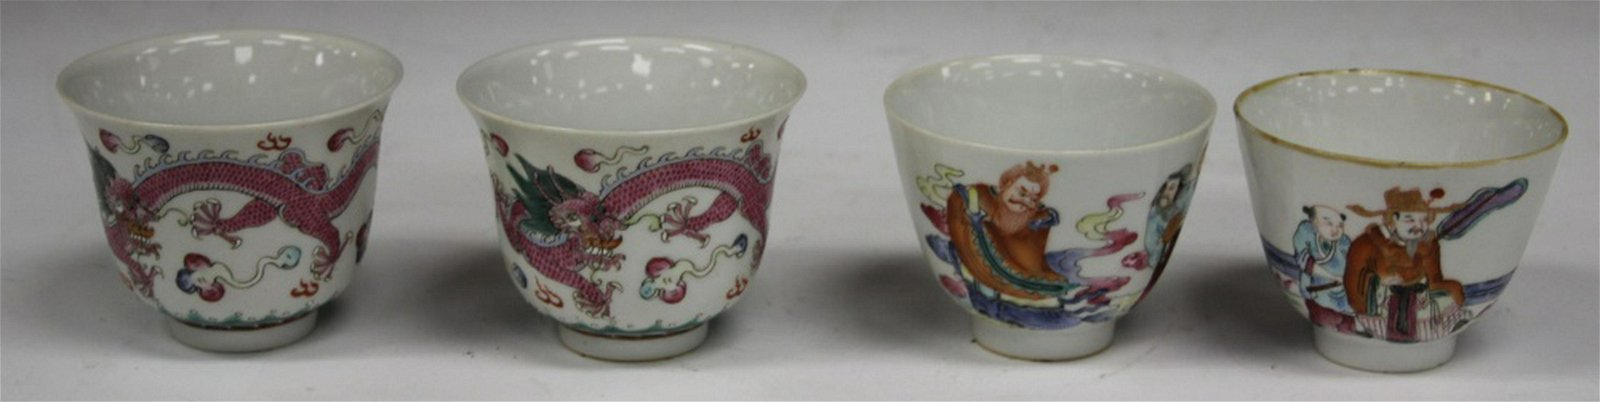 (2) PAIRS OF CHINESE PORCELAIN ENAMELED TEA CUPS